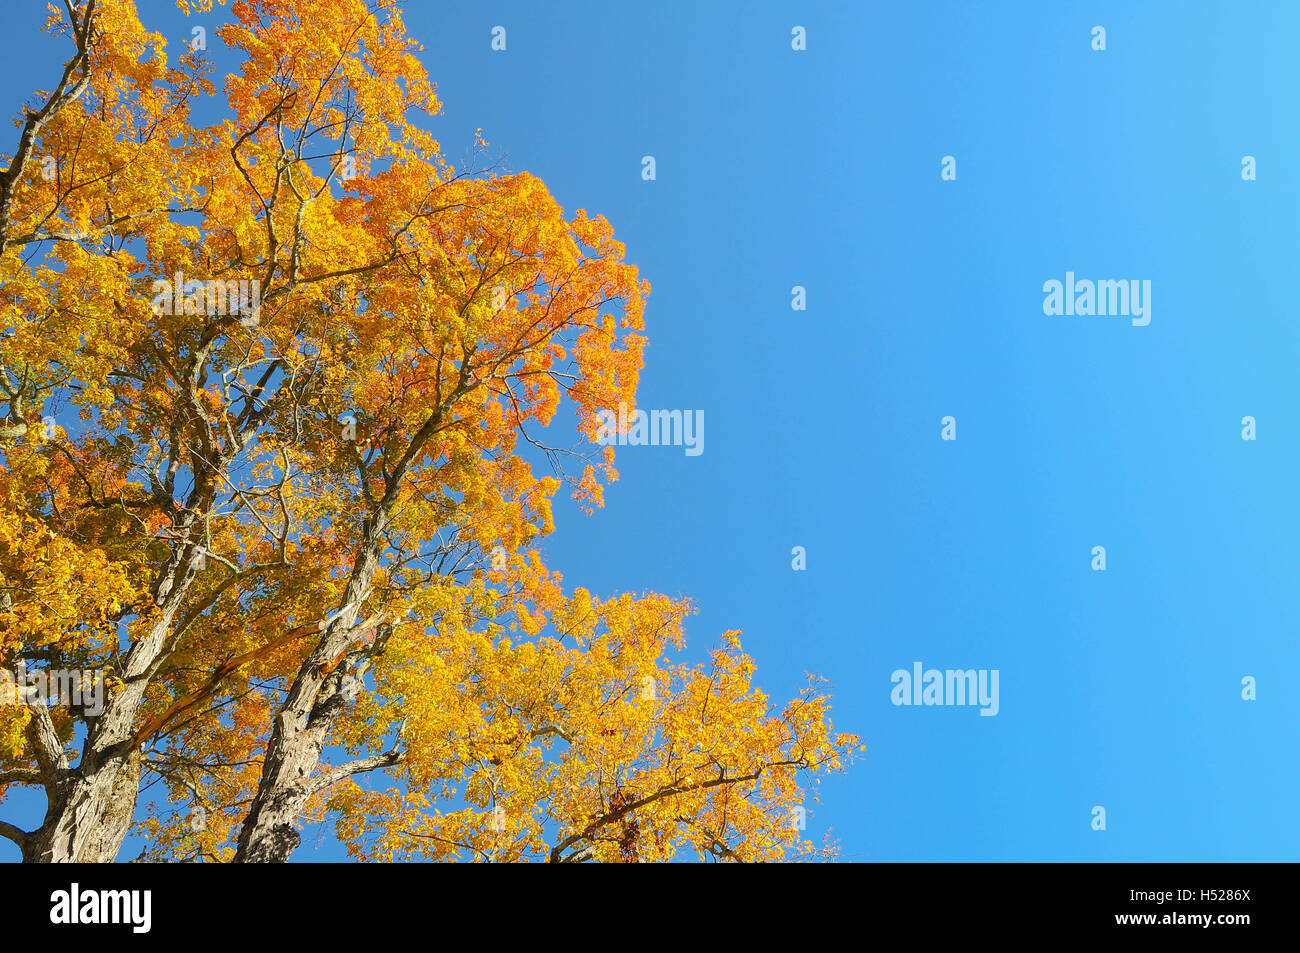 The top of a maple tree with yellow leaves against a clear, blue sky. - Stock Image